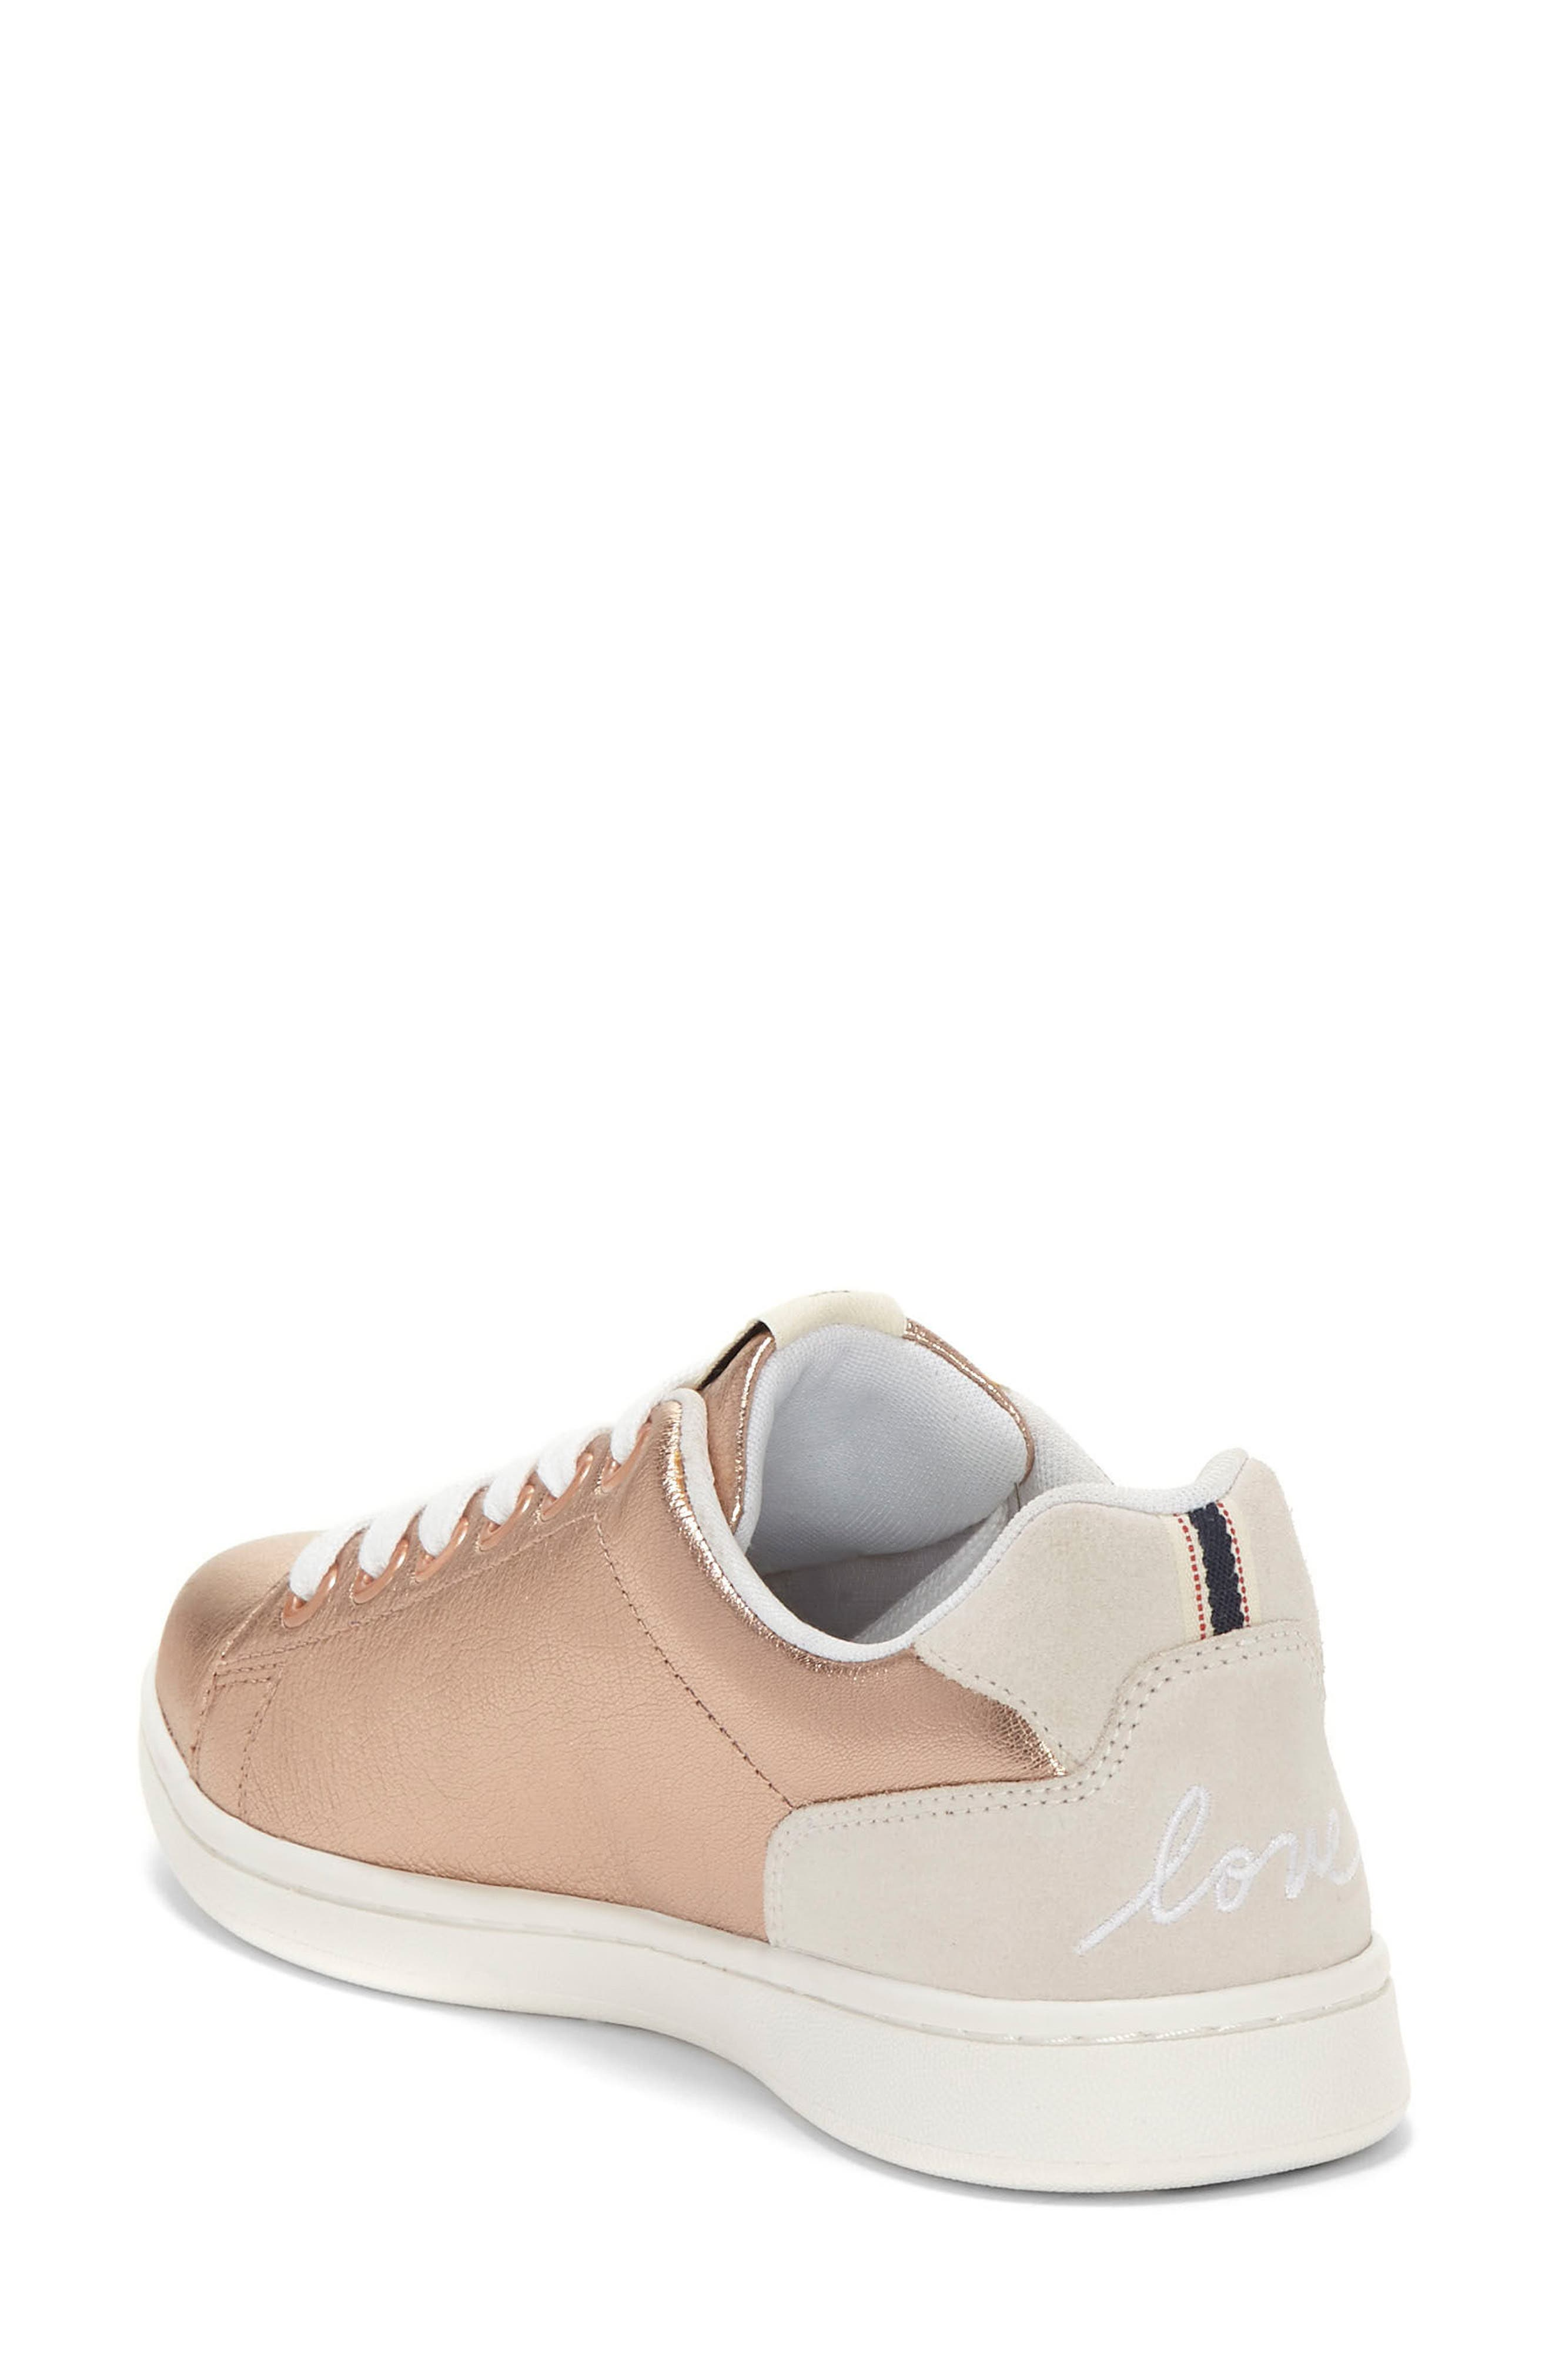 Chapunto Sneaker,                             Alternate thumbnail 3, color,                             Rose Gold Leather